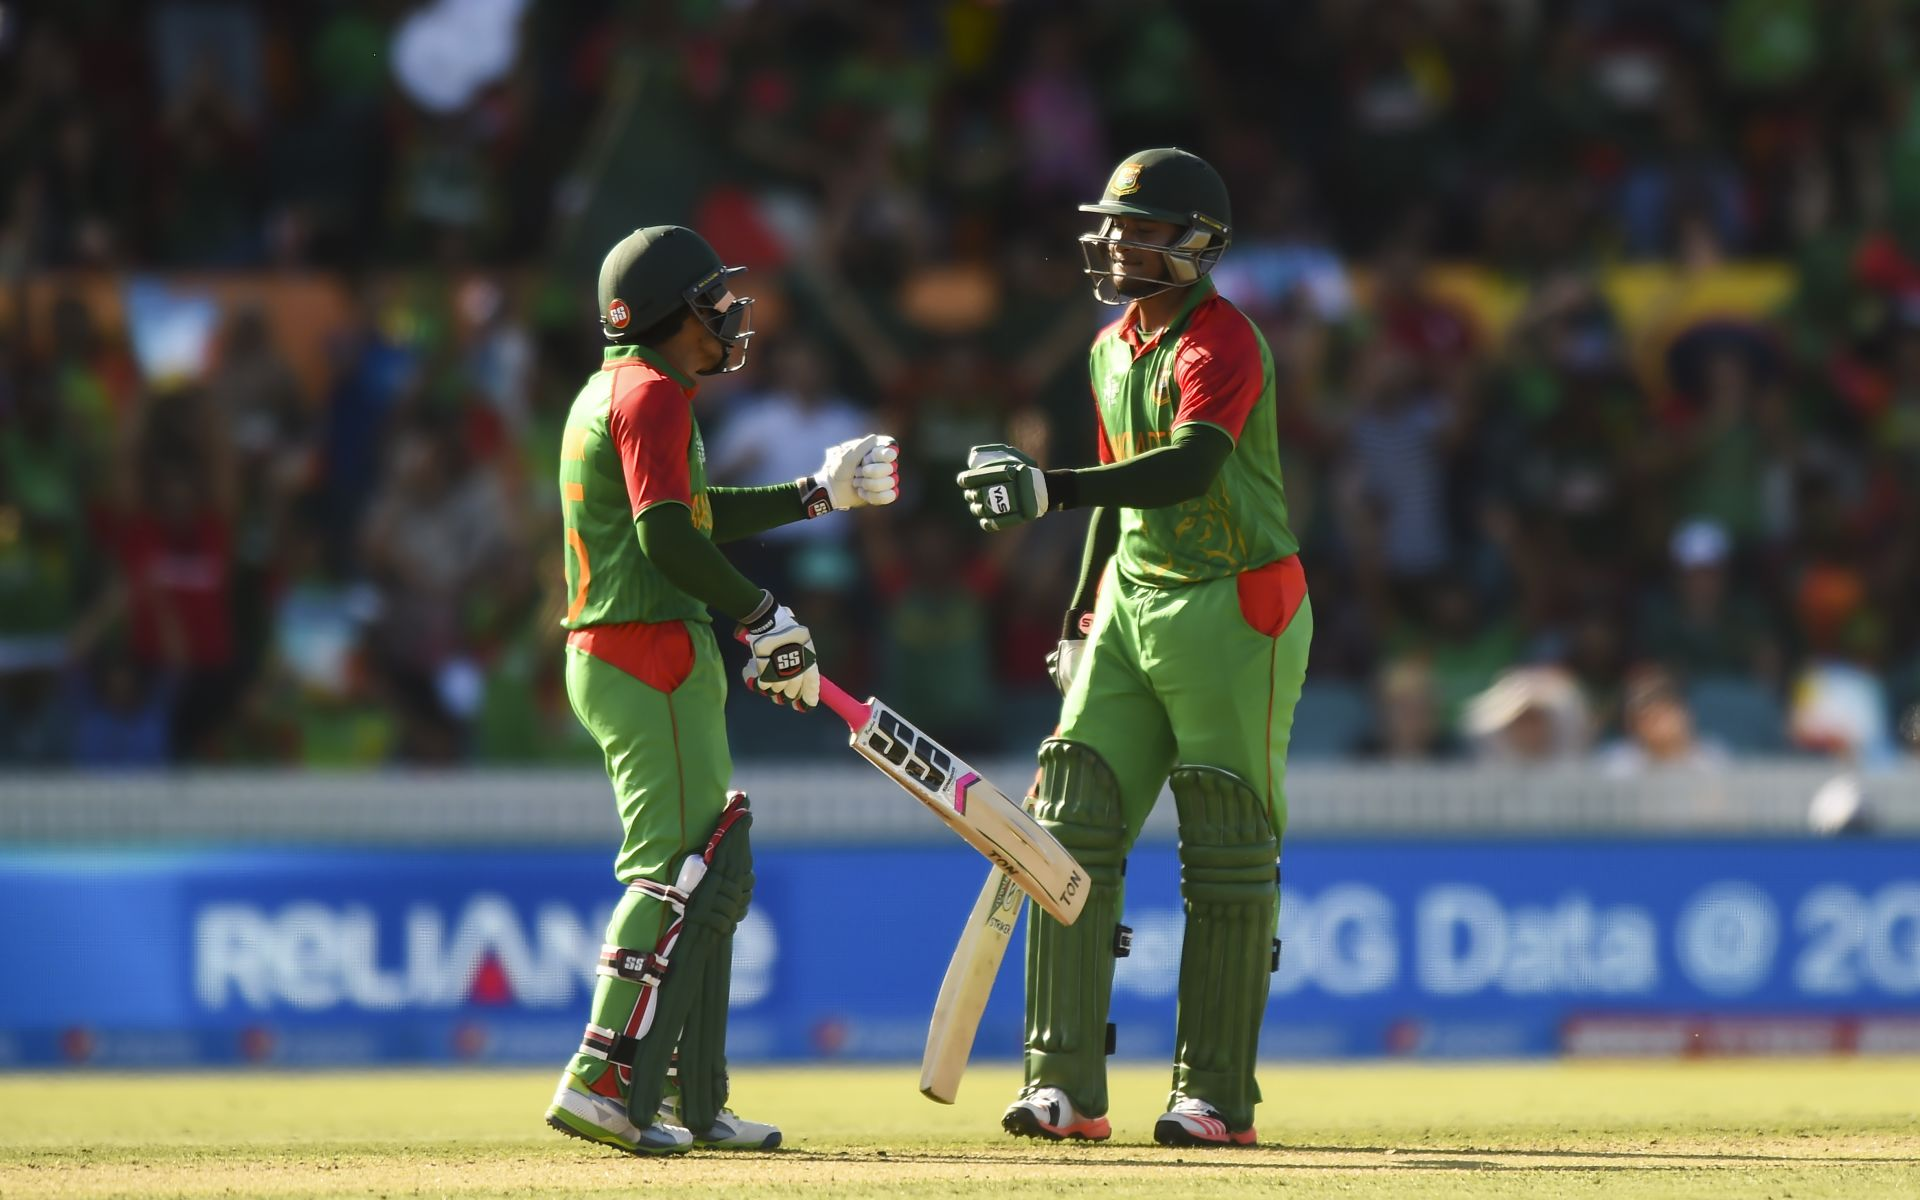 Mushfiqur Rahim Shakib Al Hasan England vs Bangladesh betting tips predictions odds